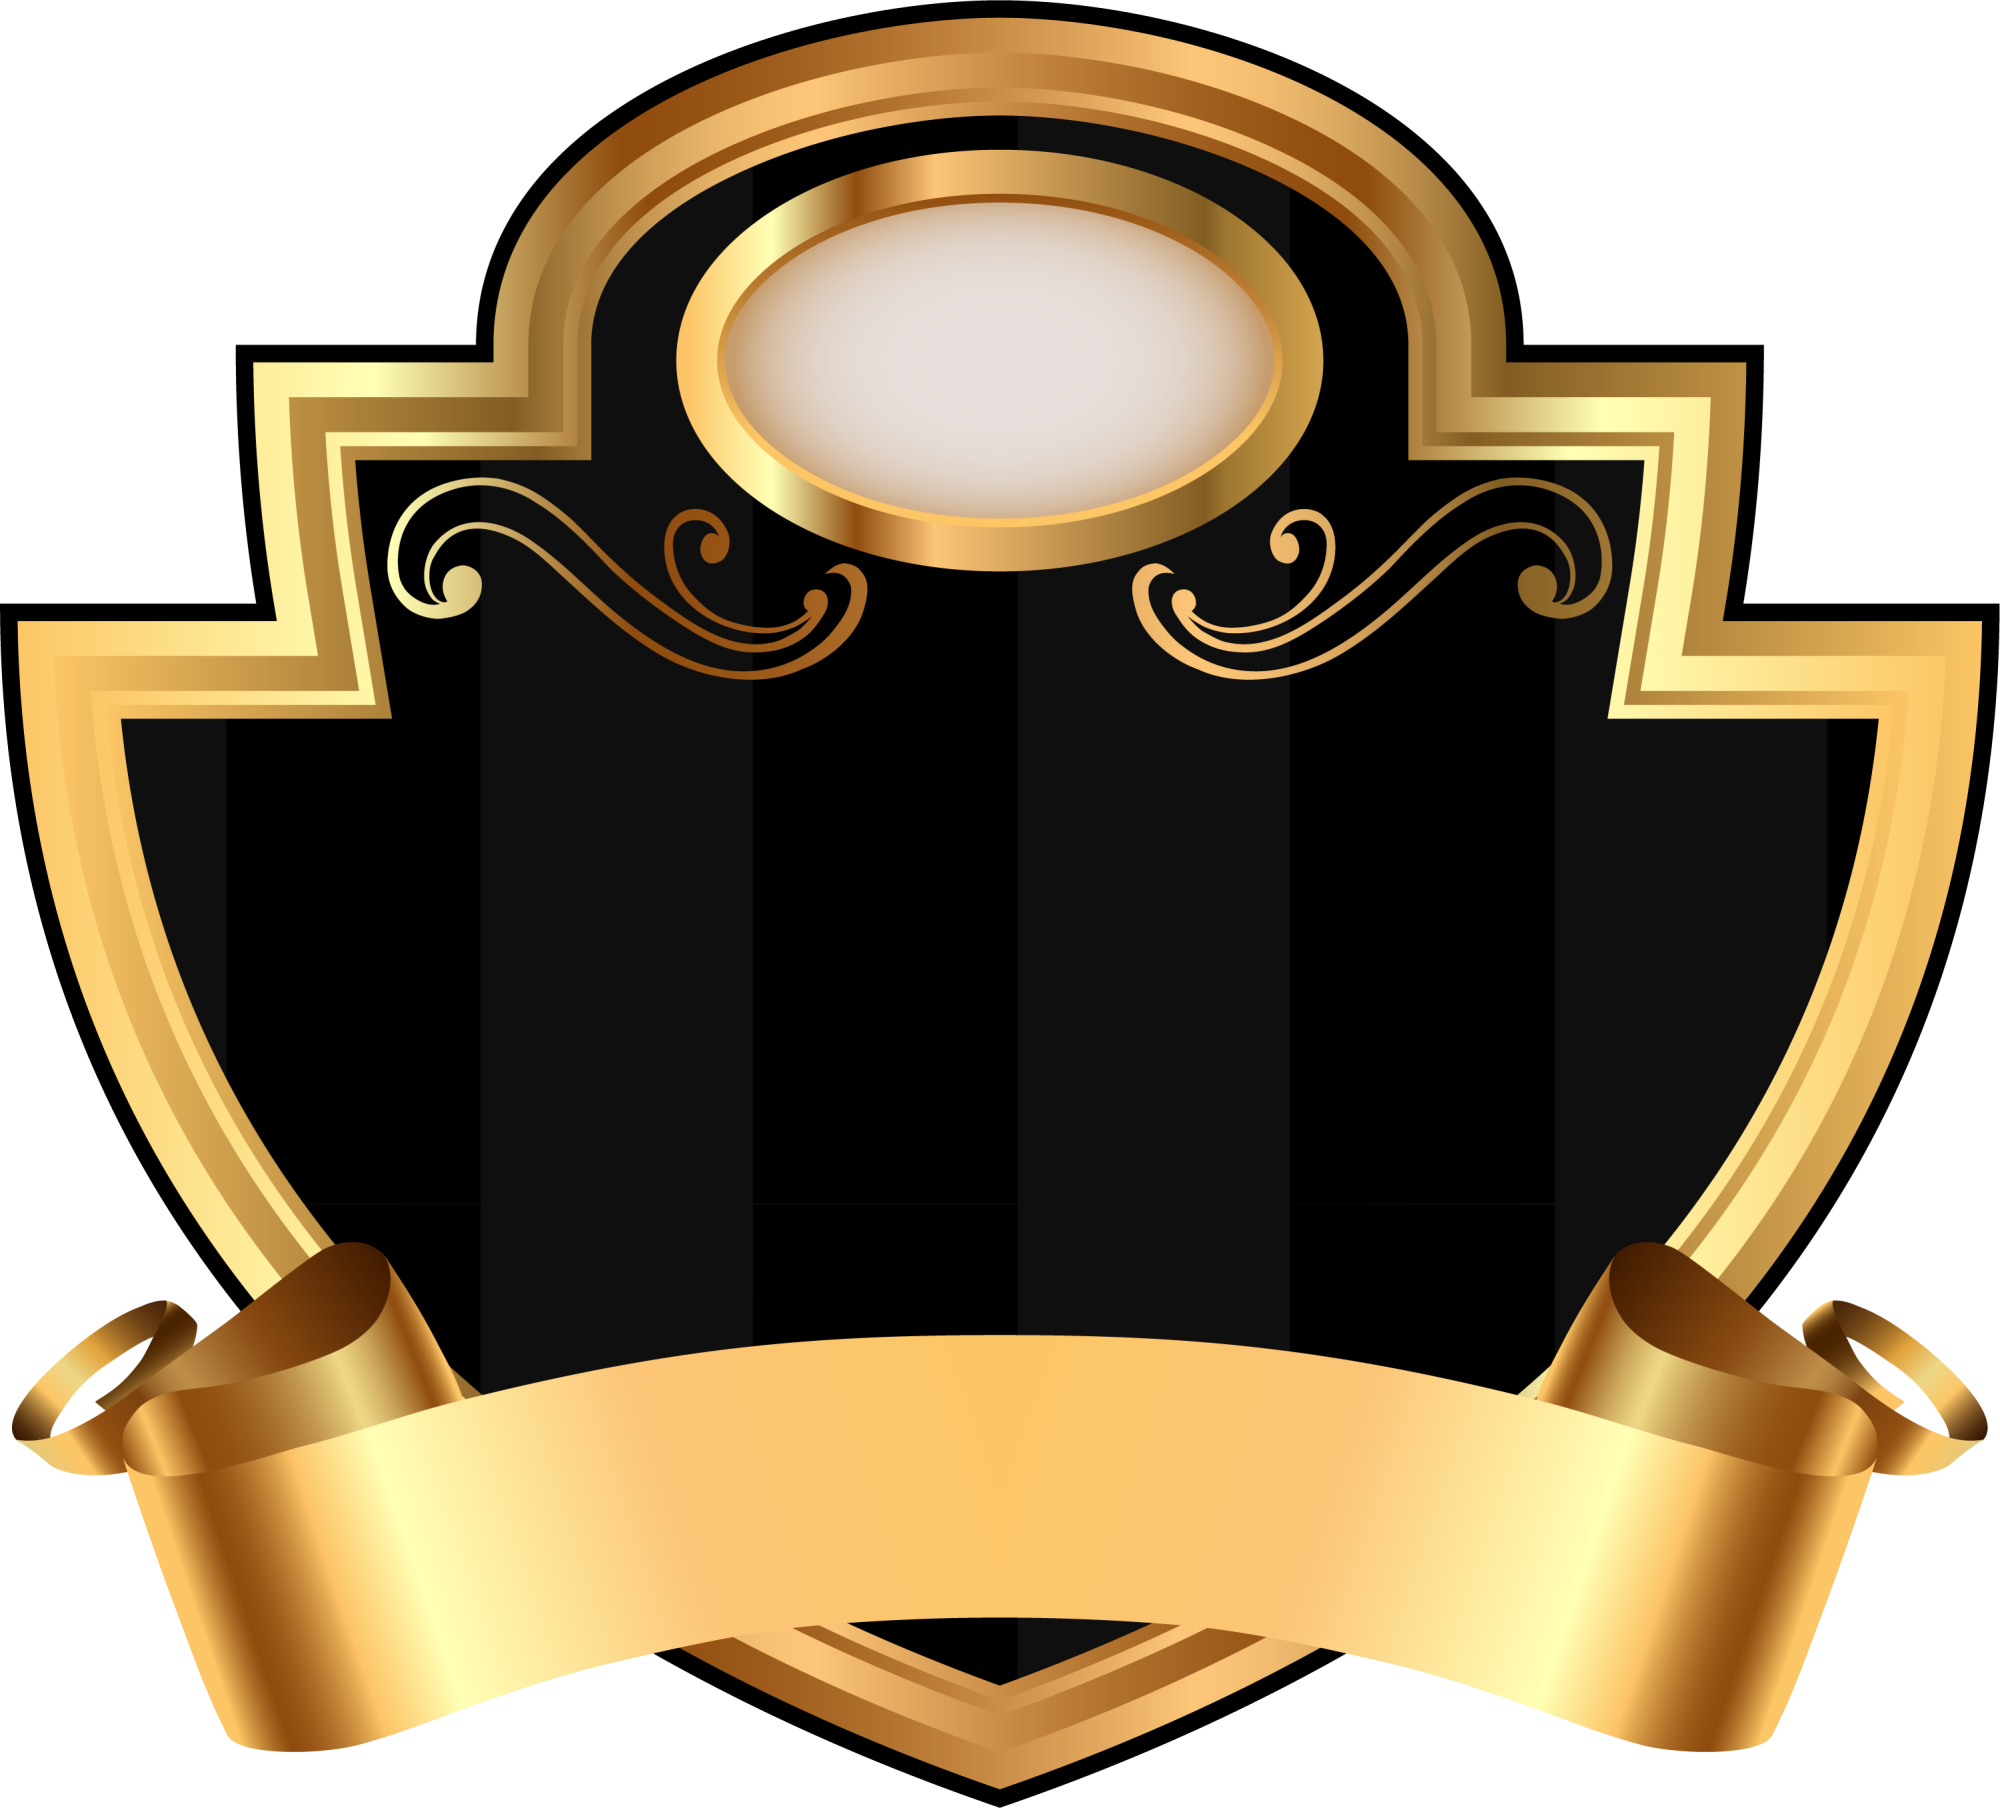 Clipart shield trophy. Elevator umbrellas and shading